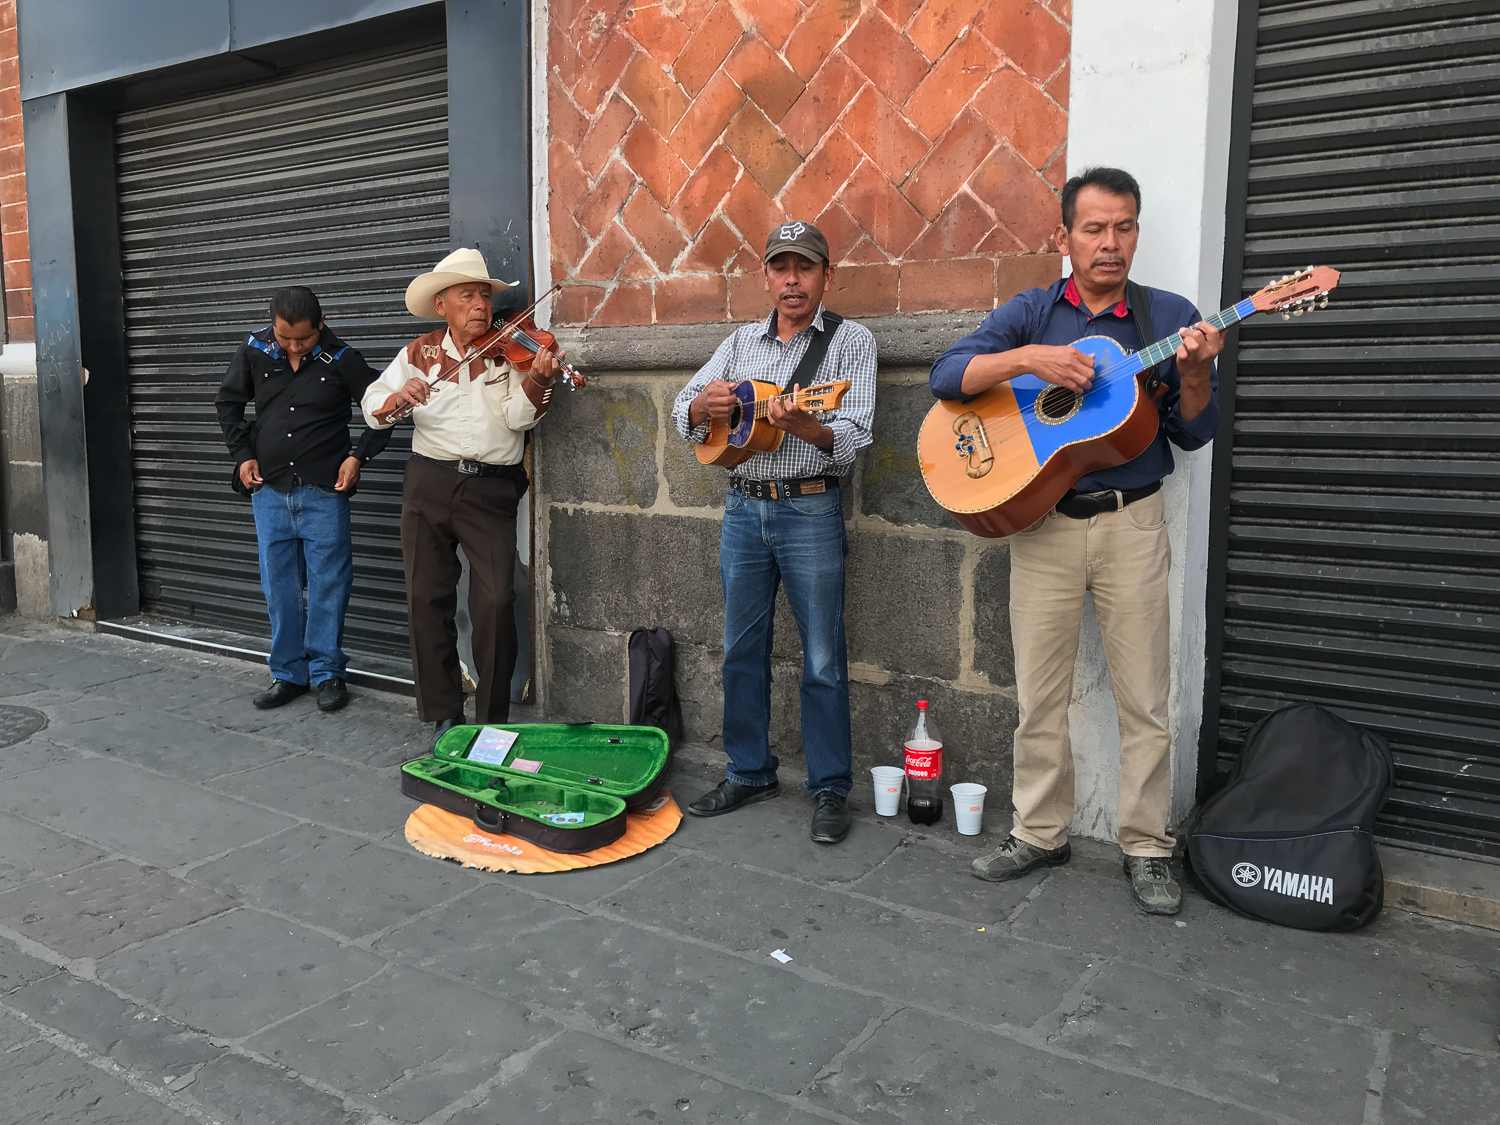 As such was the case with these musicians who would be a rare find in Los Angeles. Rudy and I were having our weekly check-in on a walk in Puebla and came across this trio. The violinist captured my attention! He has a strong resemblance to one of our Semi'a Fund clients, Juan who owns and operates a small corner store in South Central LA. From the day I first met Juan, he's had an image of his store that included fresh paint, a juicing station, a nice selection of produce, and robust inventory. With support from the Freshworks Fund, Emma's Market will soon be rocking a new refrigerator to hold produce! LA Food Policy Council was instrumental in securing a point-of-sale system to support the introduction of technology into the business. The team at IAC and LAFPC will continue to work together to support the execution of this vision.